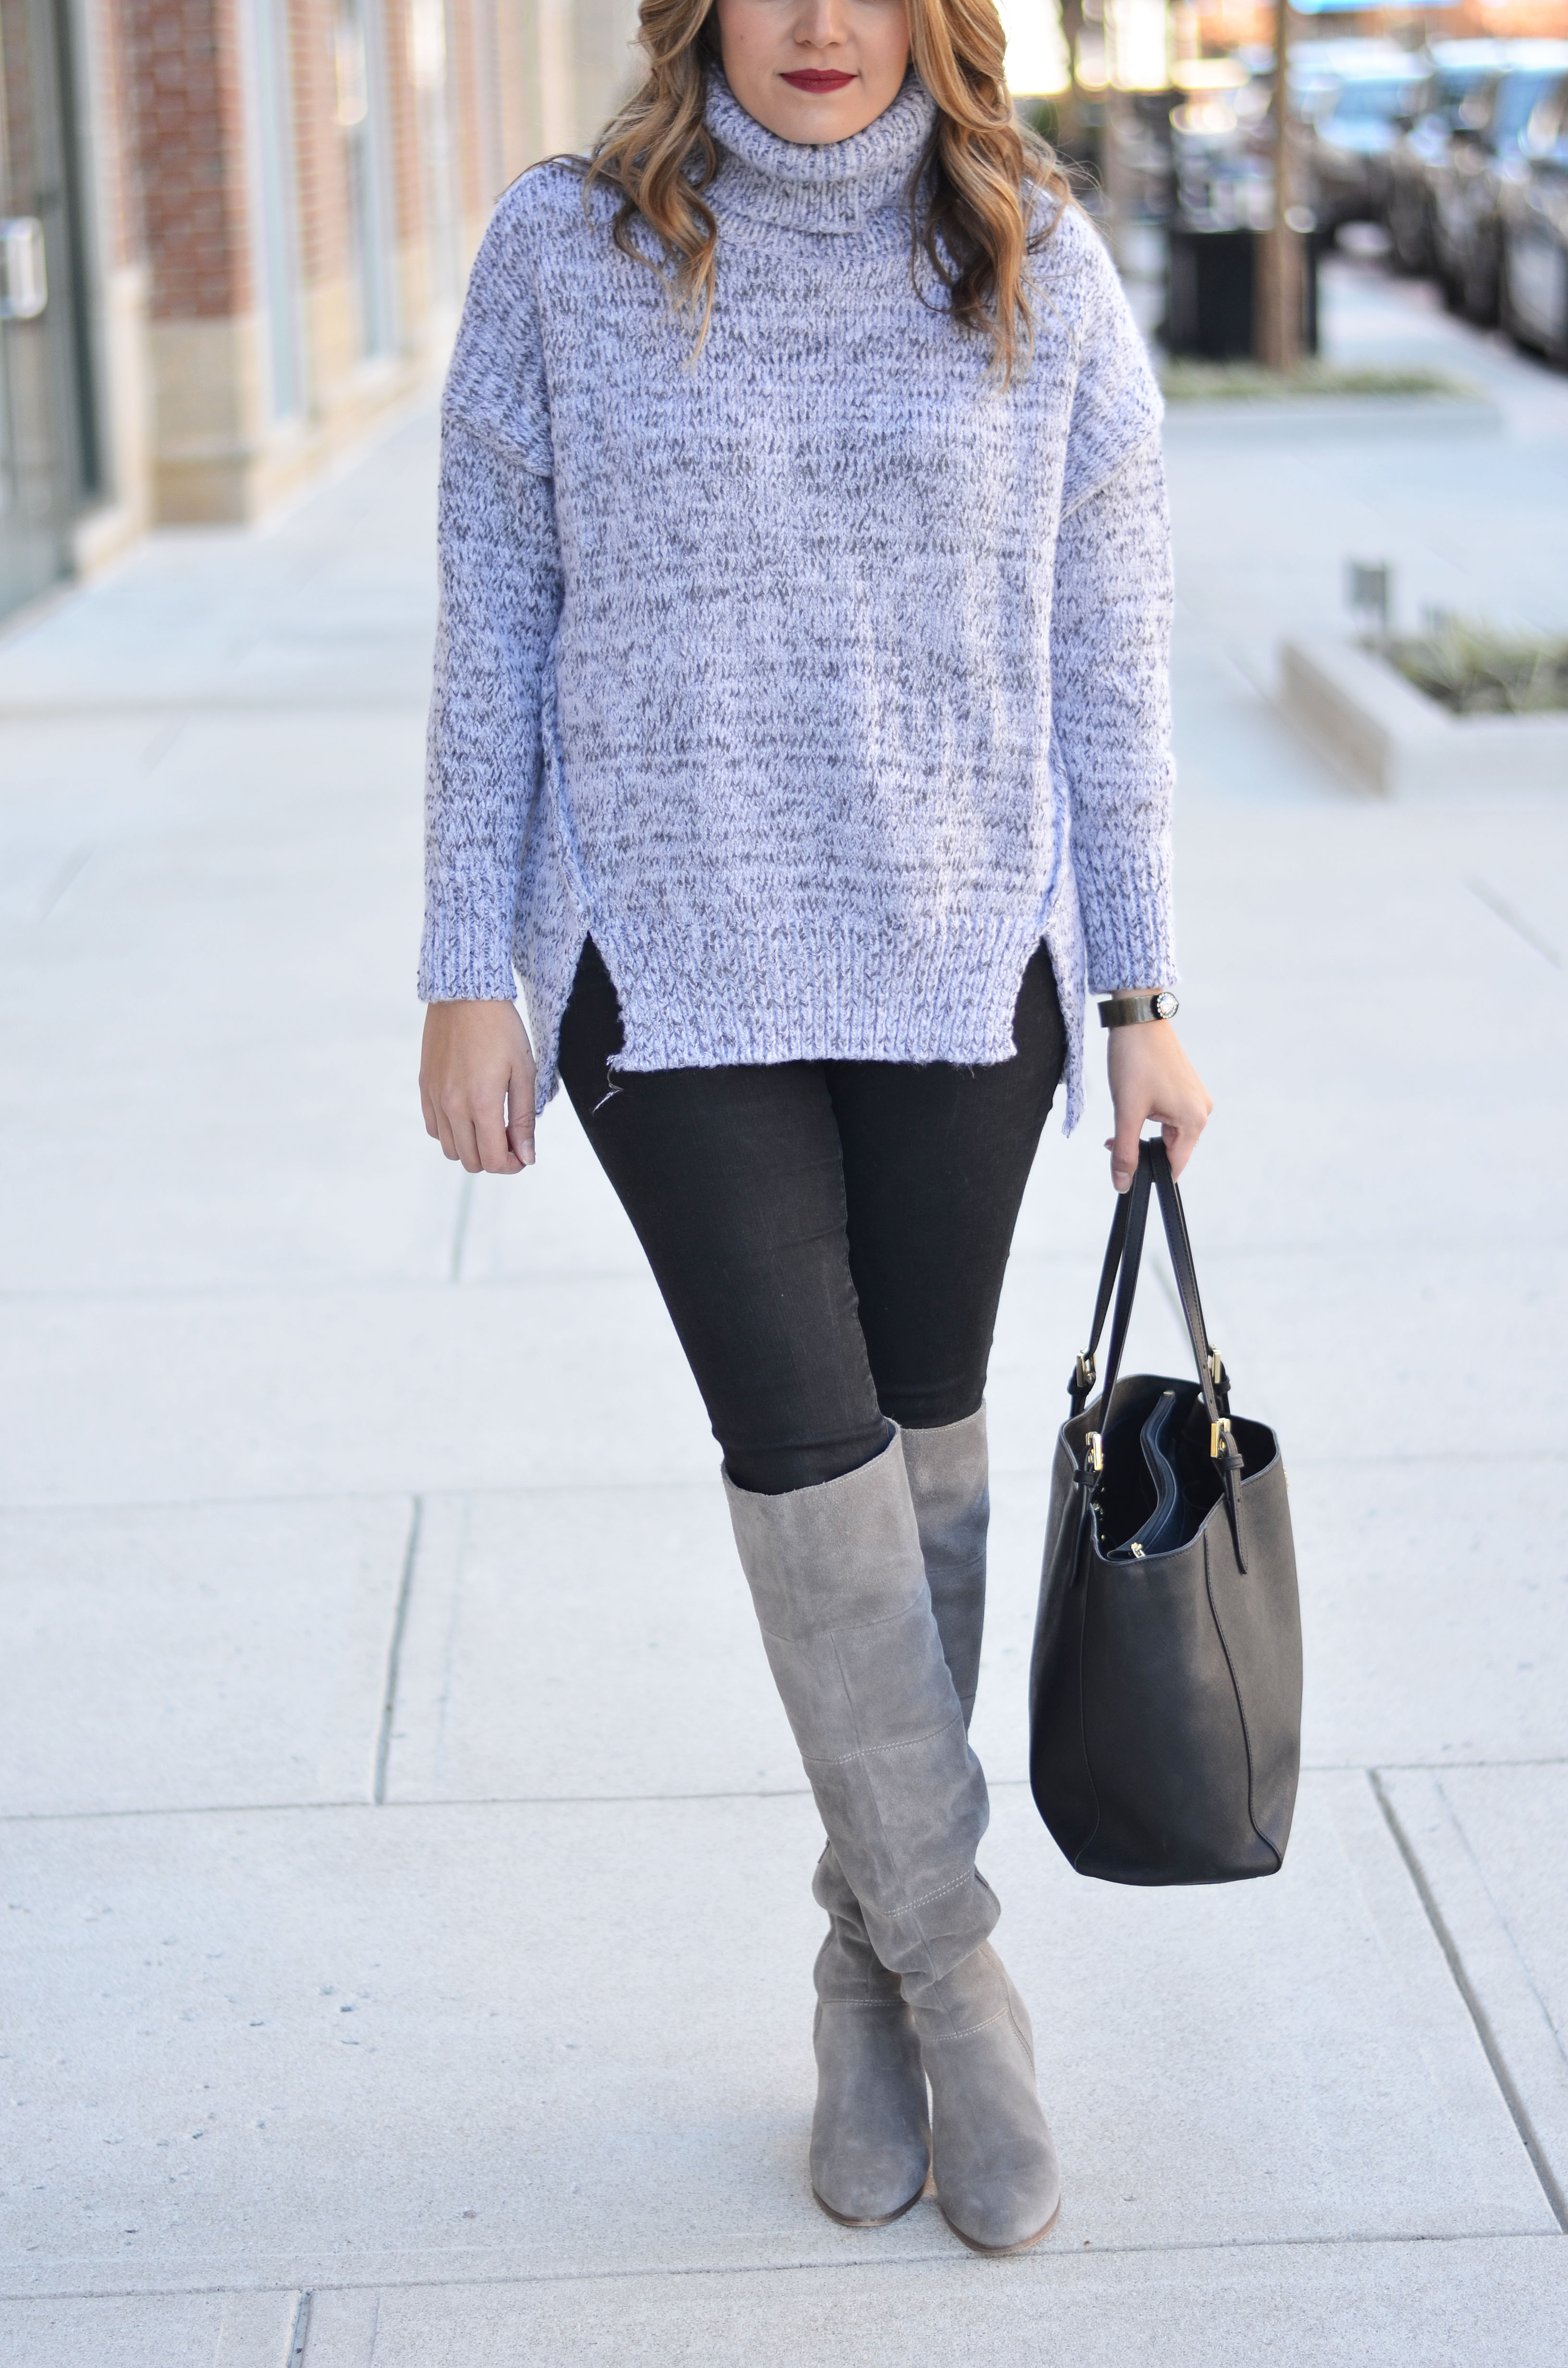 Oversized Turtleneck | Gray Oversized Turtleneck Outfit | By Lauren M